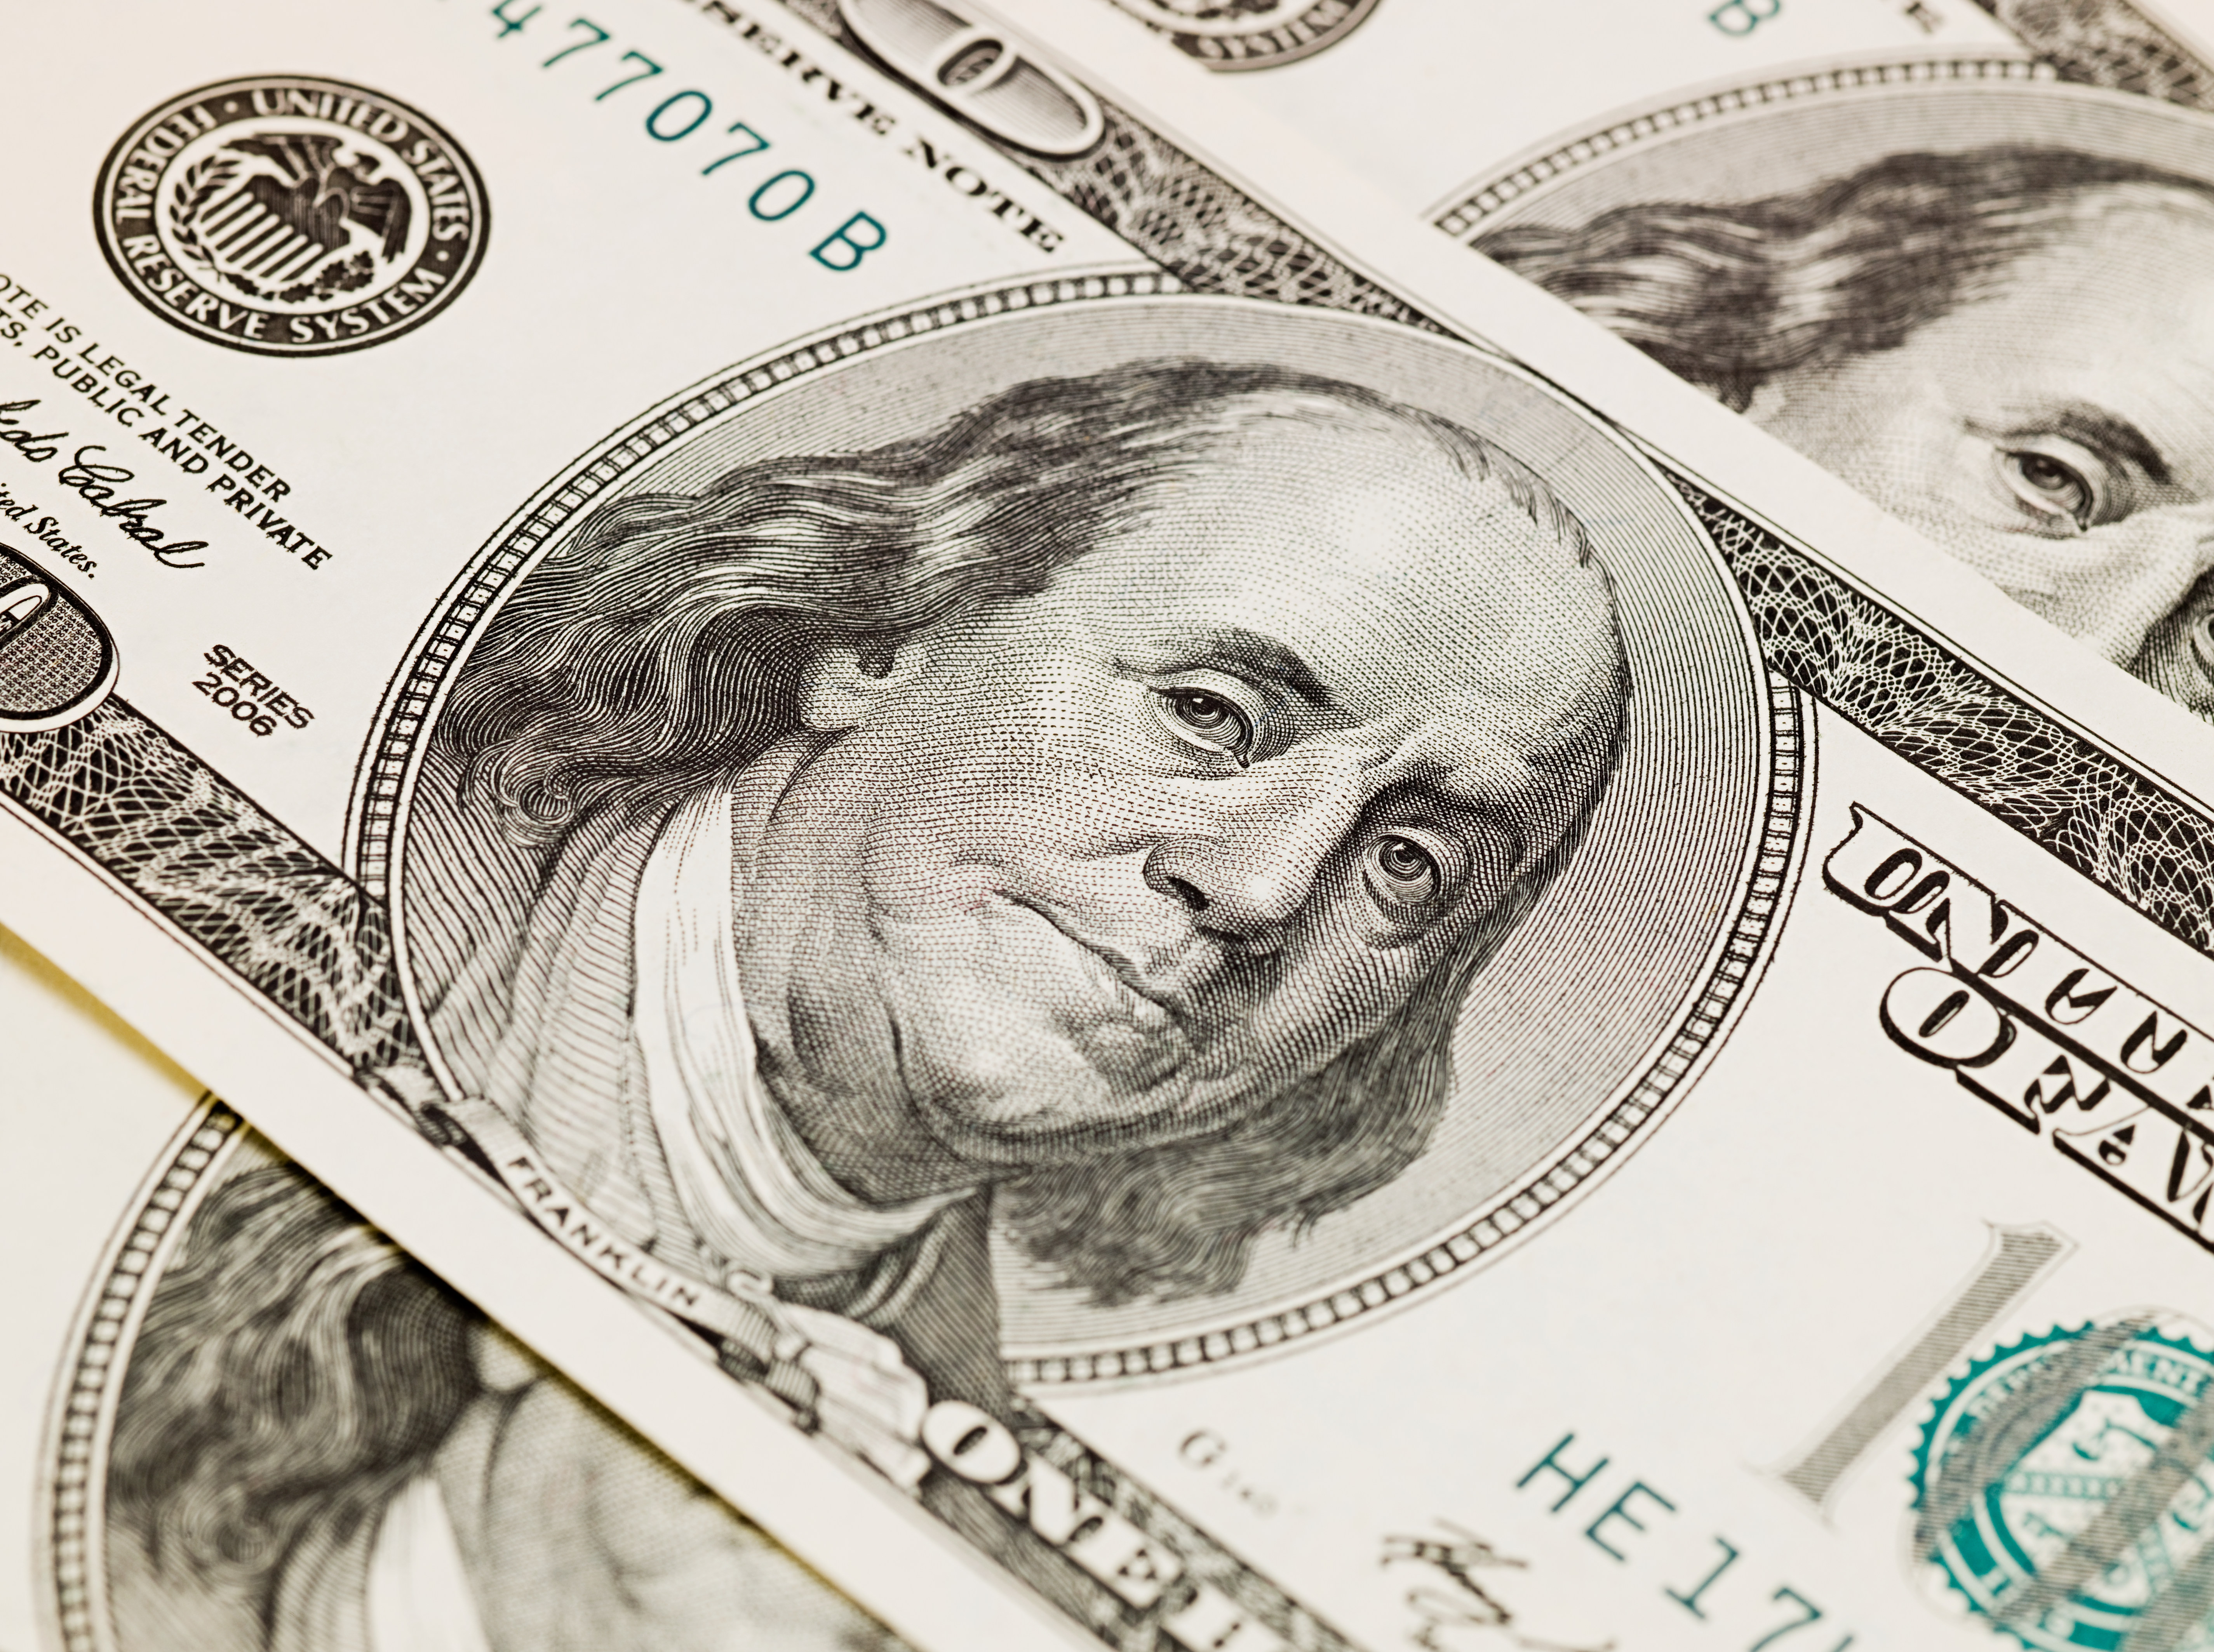 $100 Bill: Here's Why the U S  Does Not Have Plans to Ditch